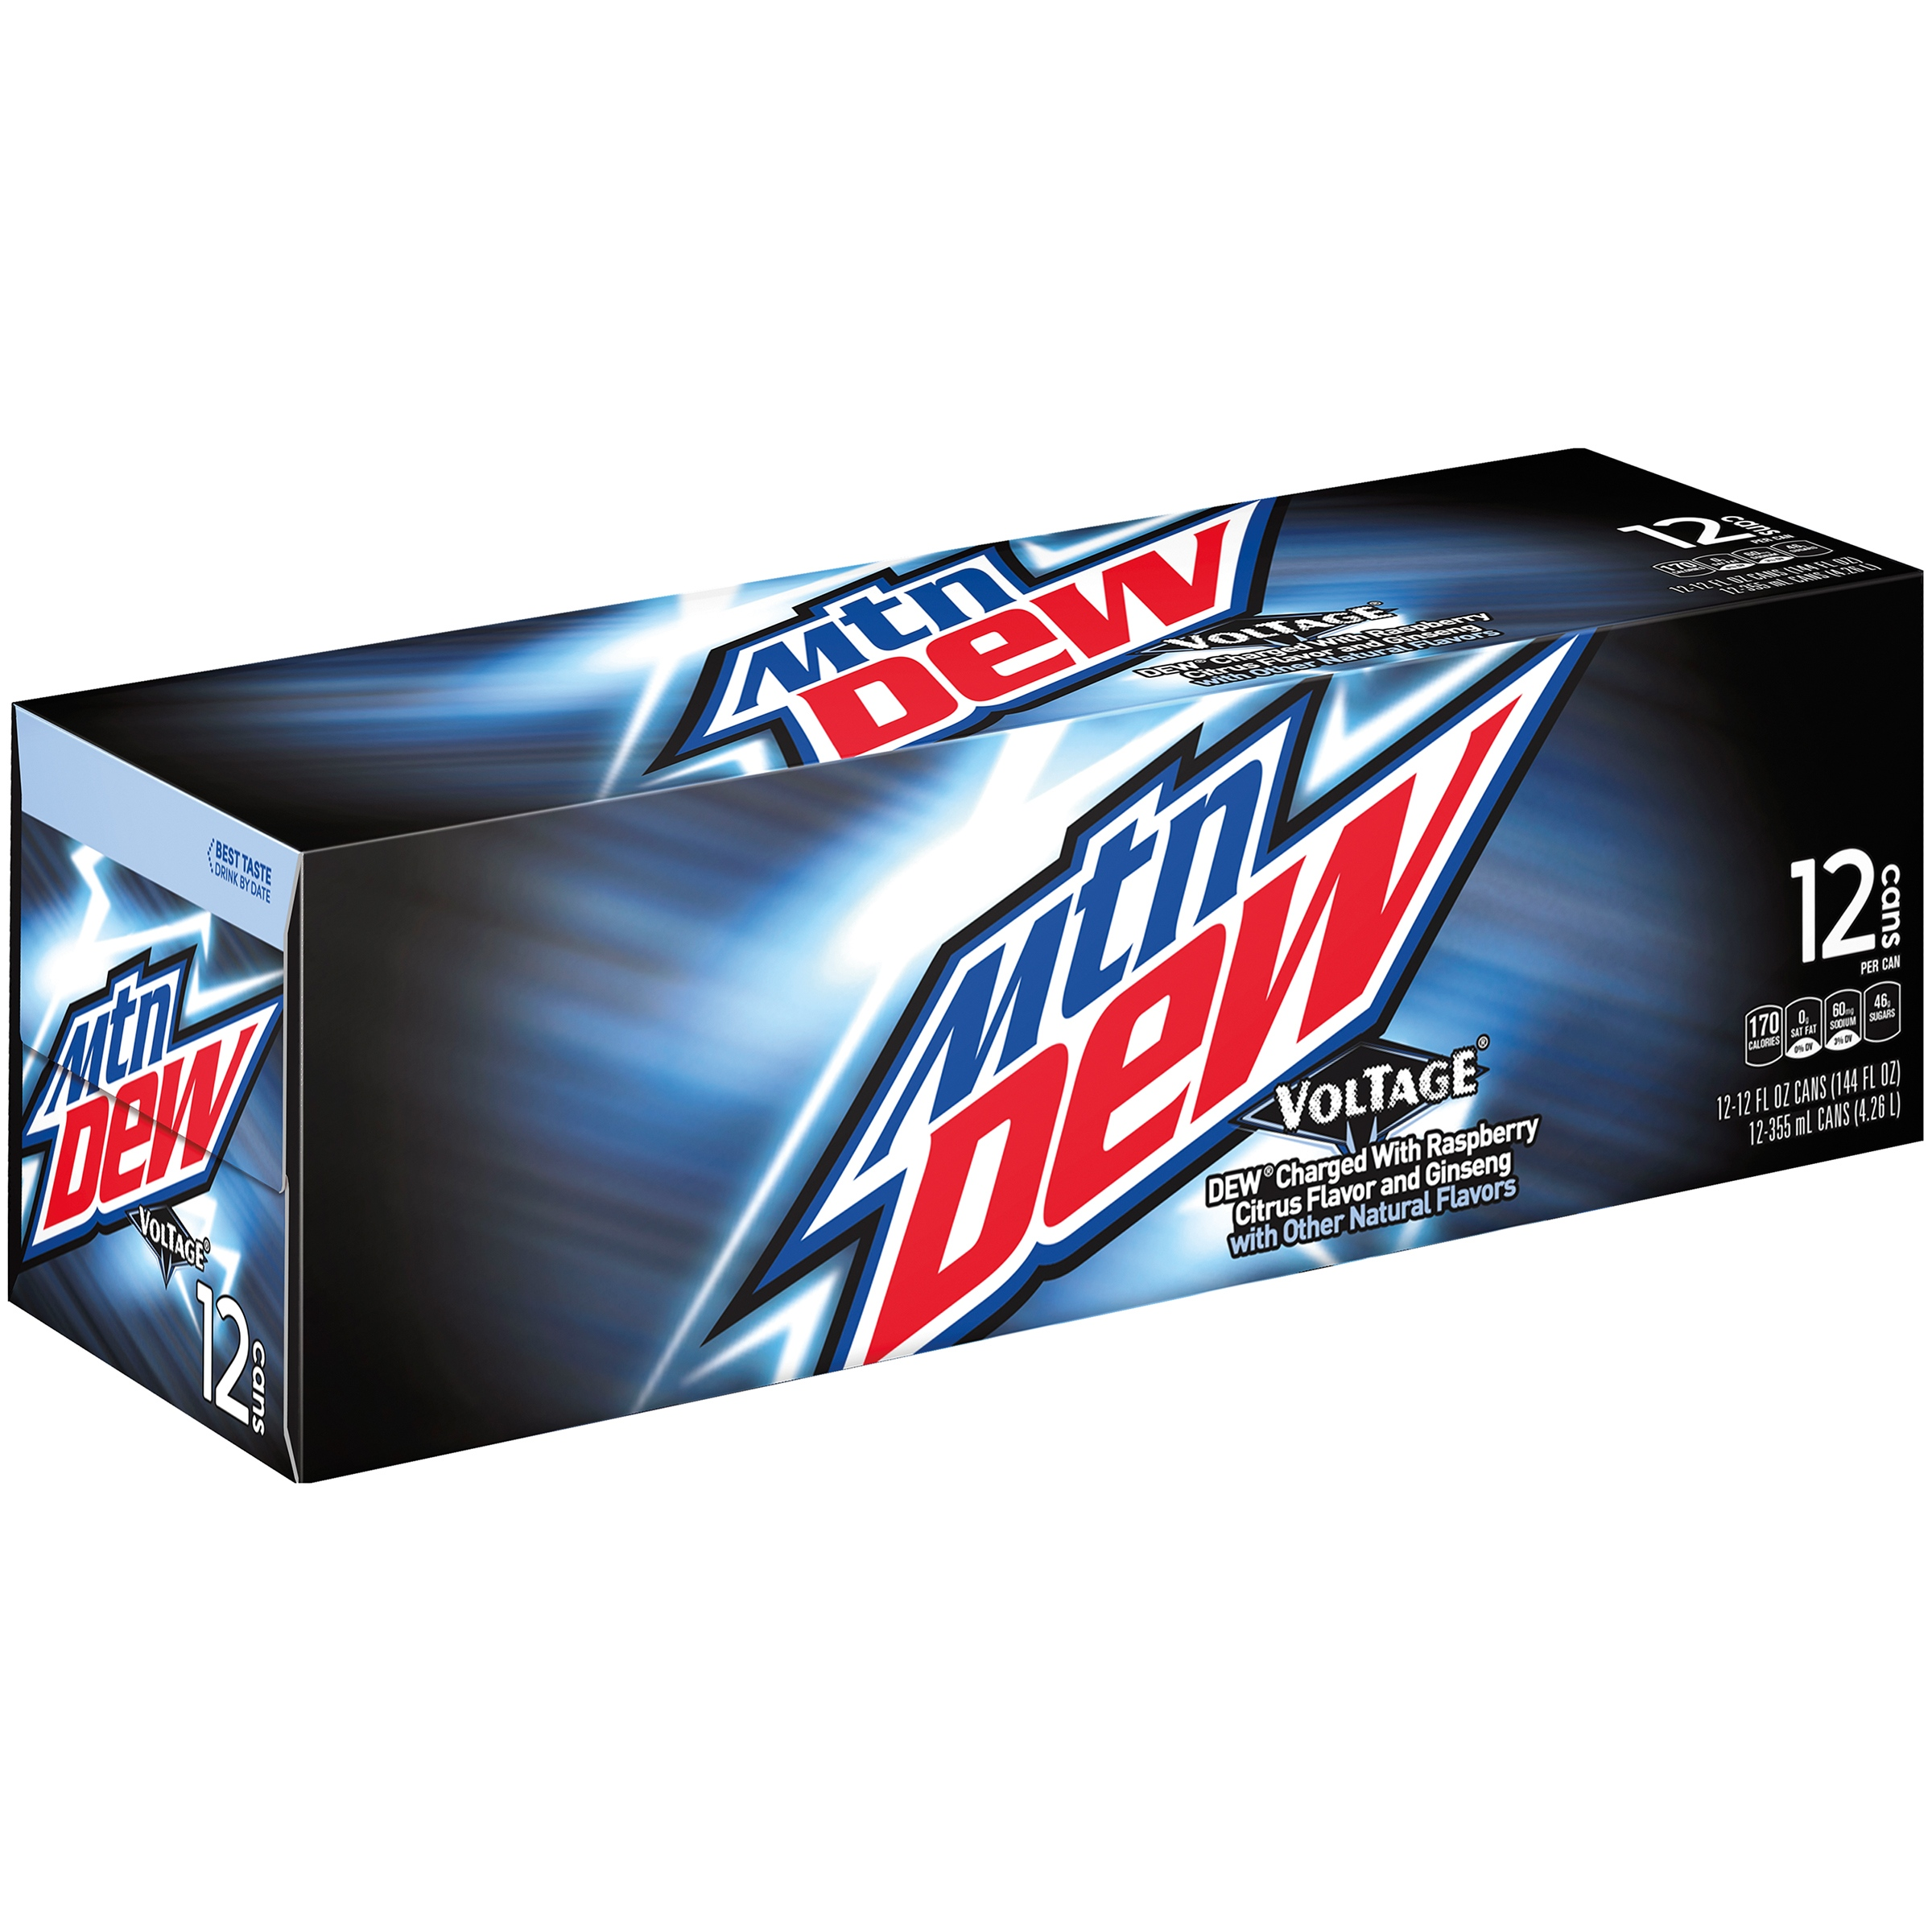 Mountain Dew Voltage Soda, Raspberry Citrus And Ginseng, 12 Fl Oz, 12 Count